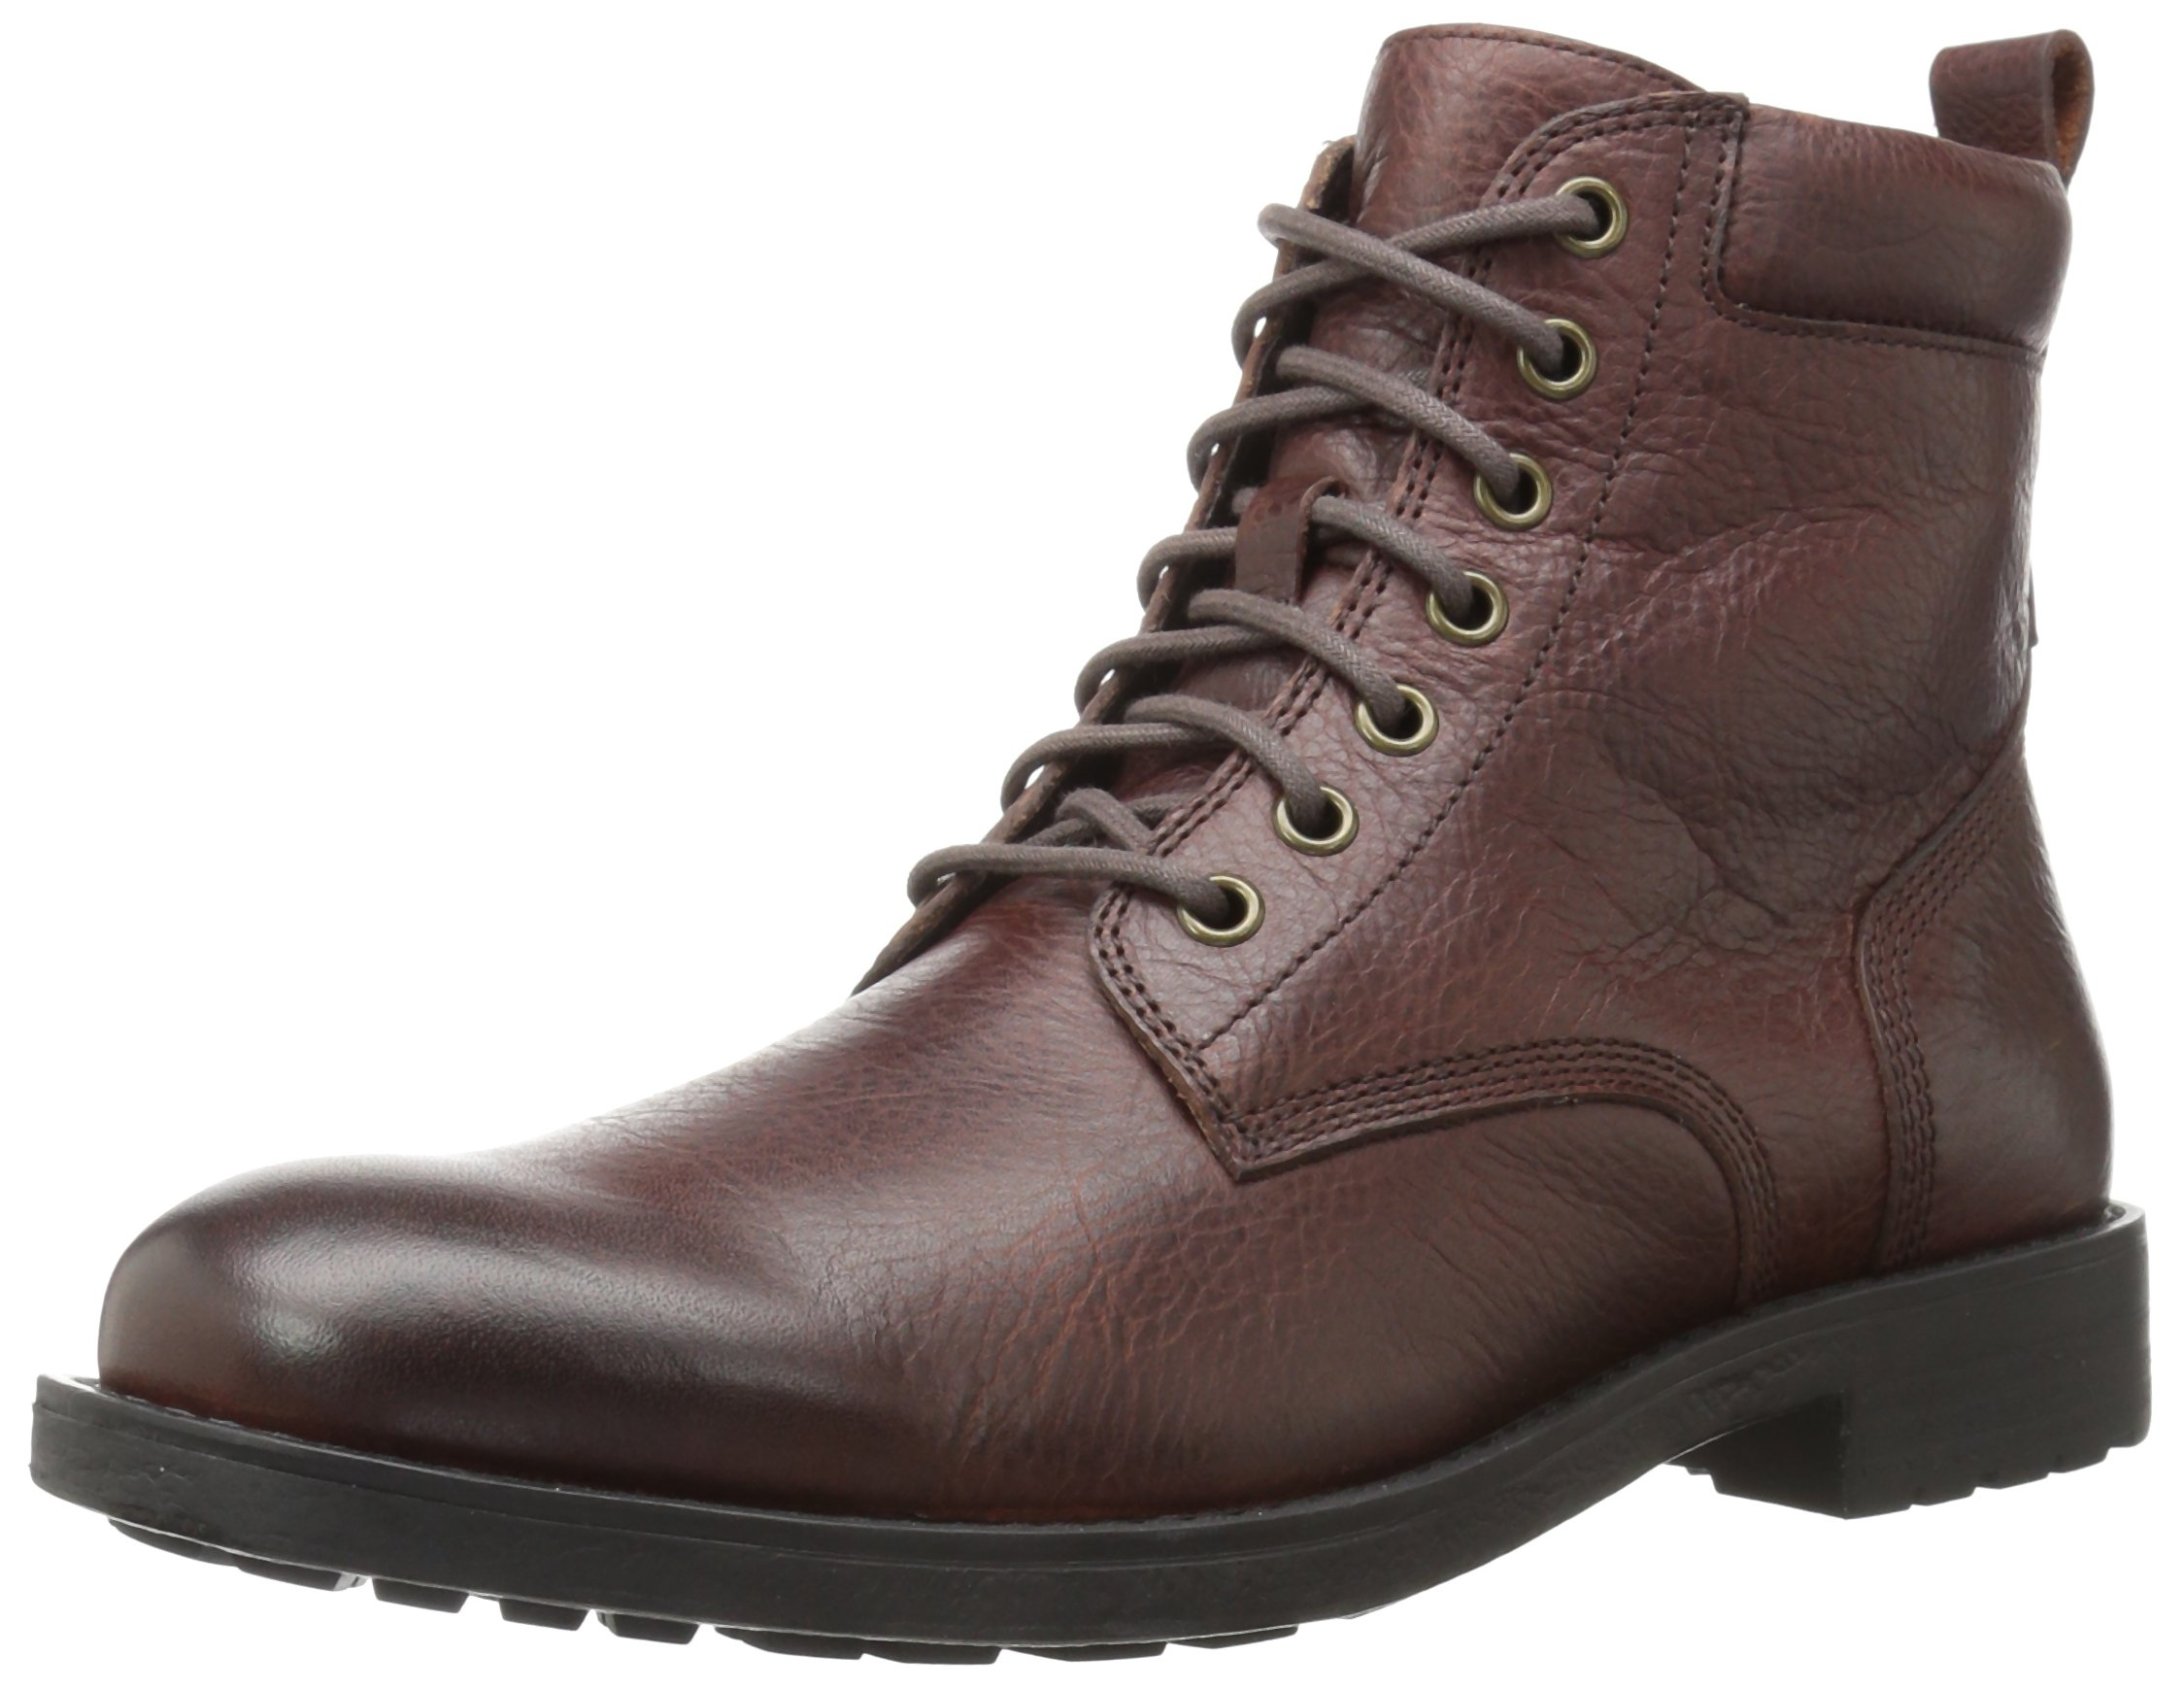 206 Collective Men's Denny Lace-up Motorcycle Boot, Dark Brown, 10.5 D US